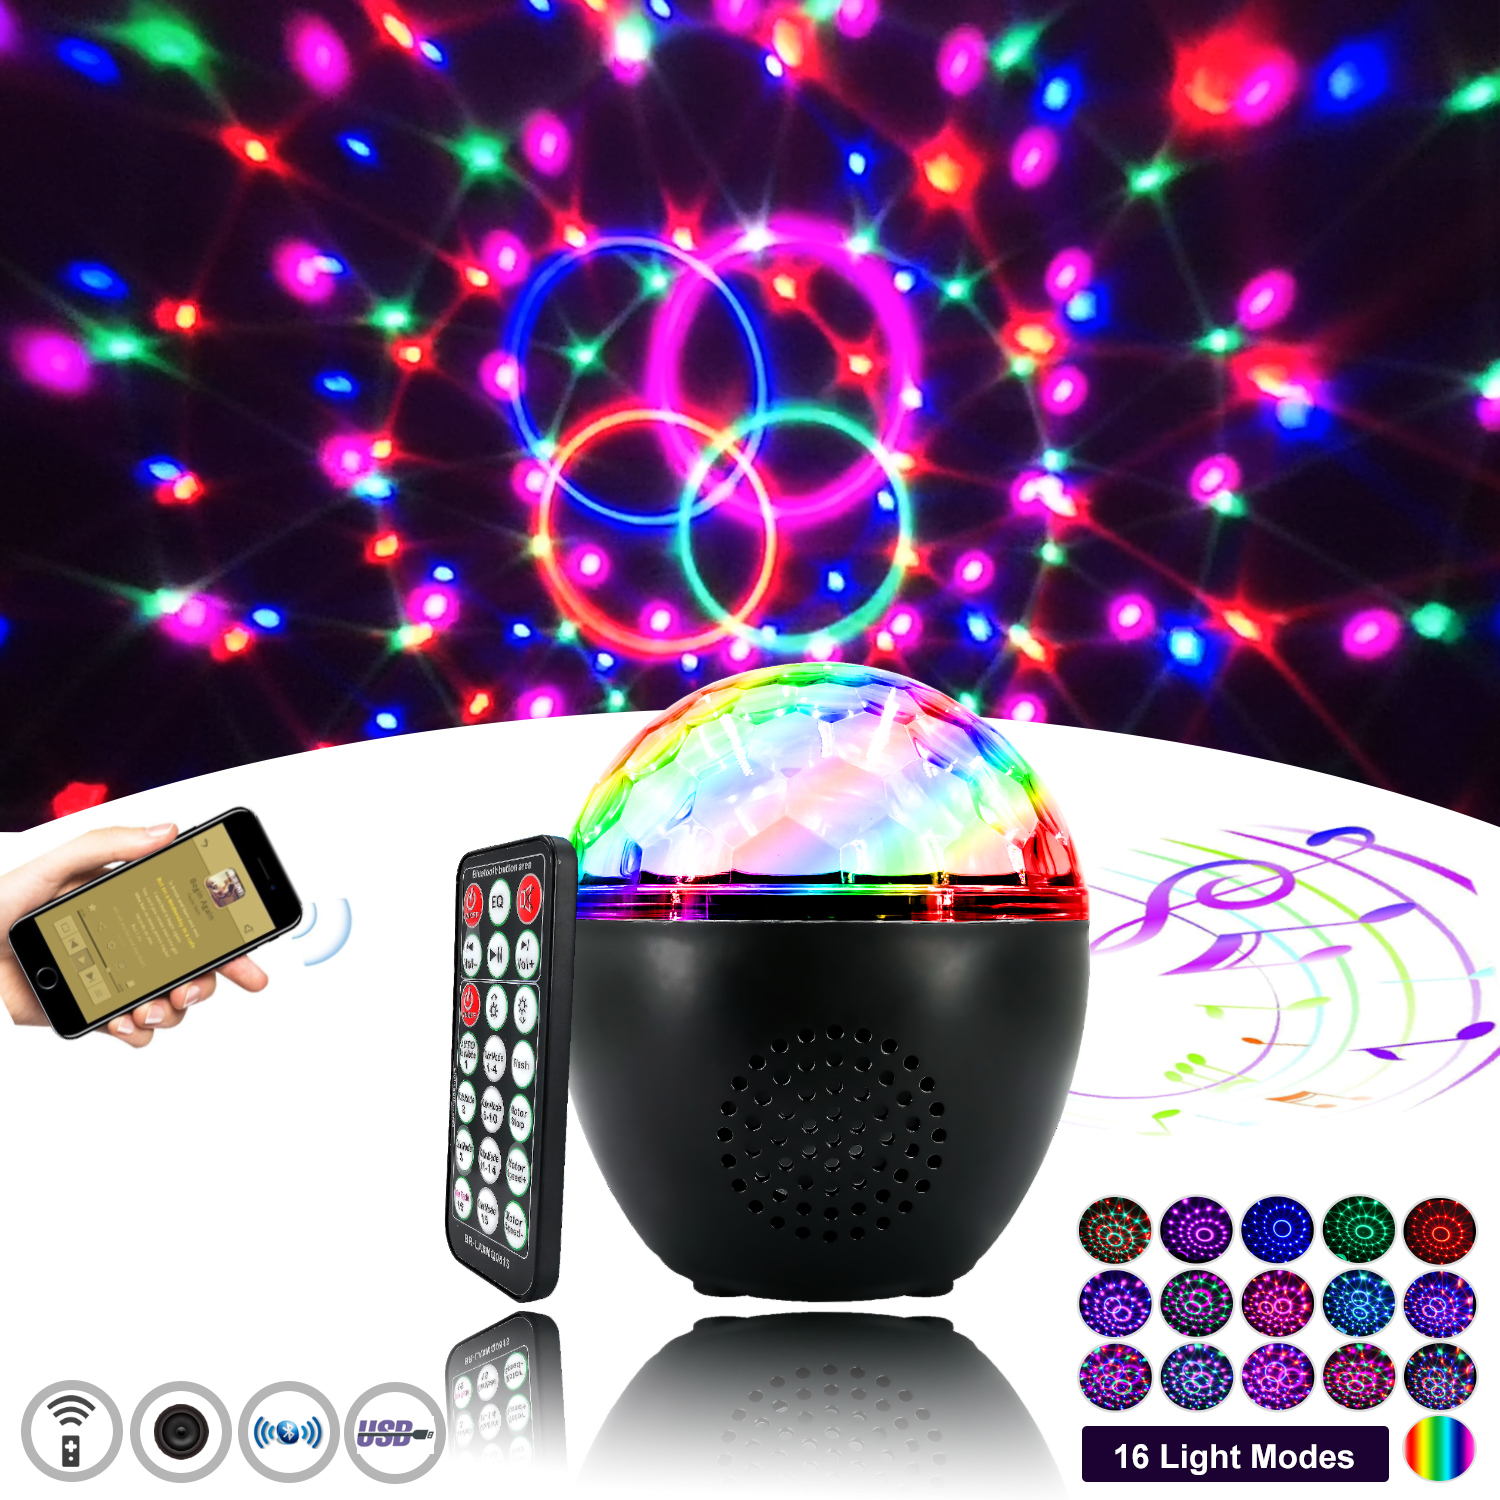 16 LED Party Projector Light with Bluetooth Speaker image